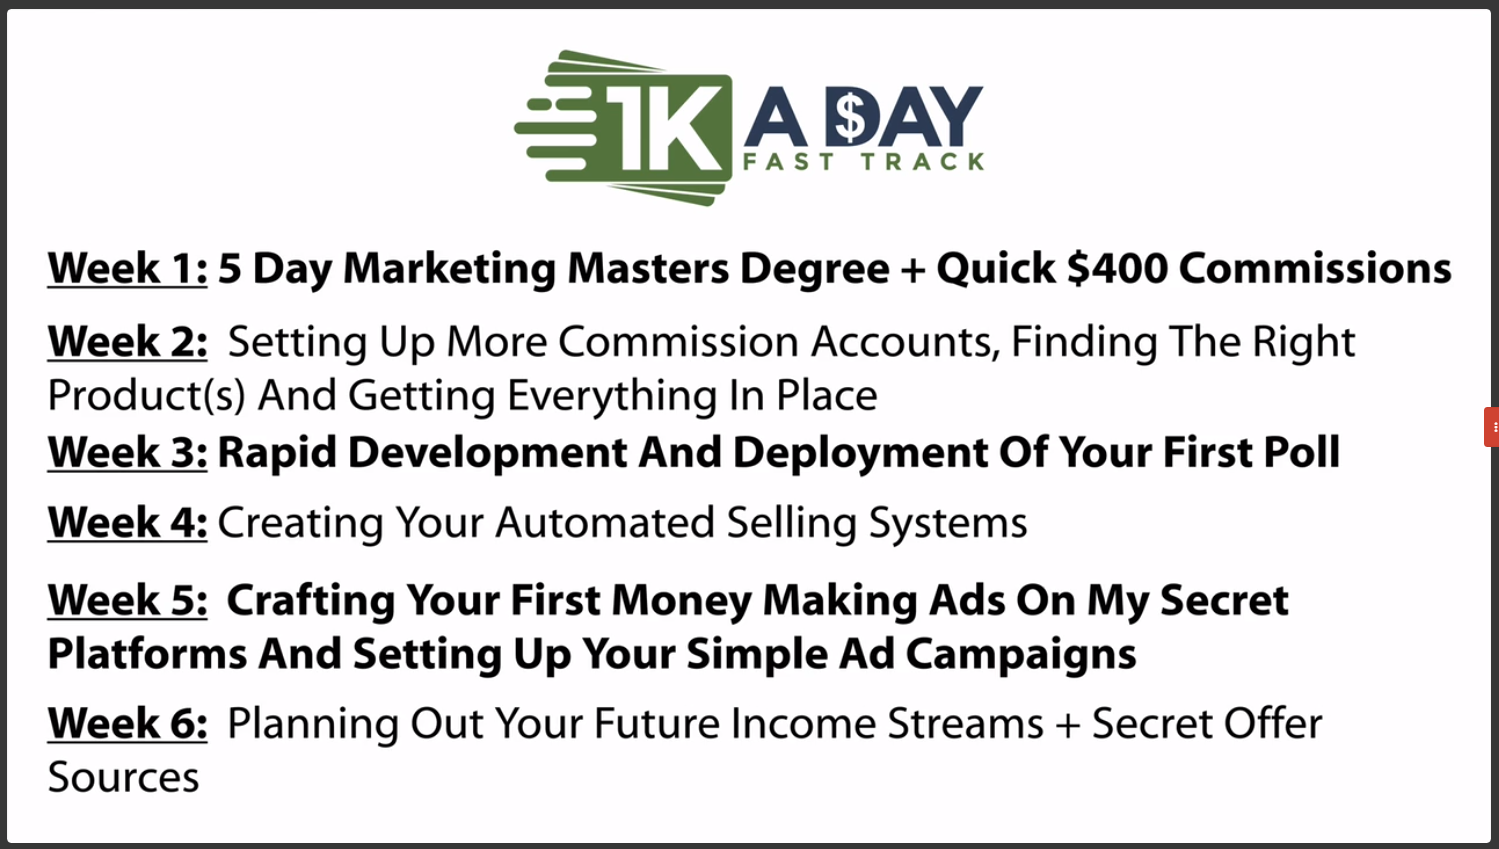 1k A Day Fast Track Training Program Coupon Code Refurbished Outlet March 2020